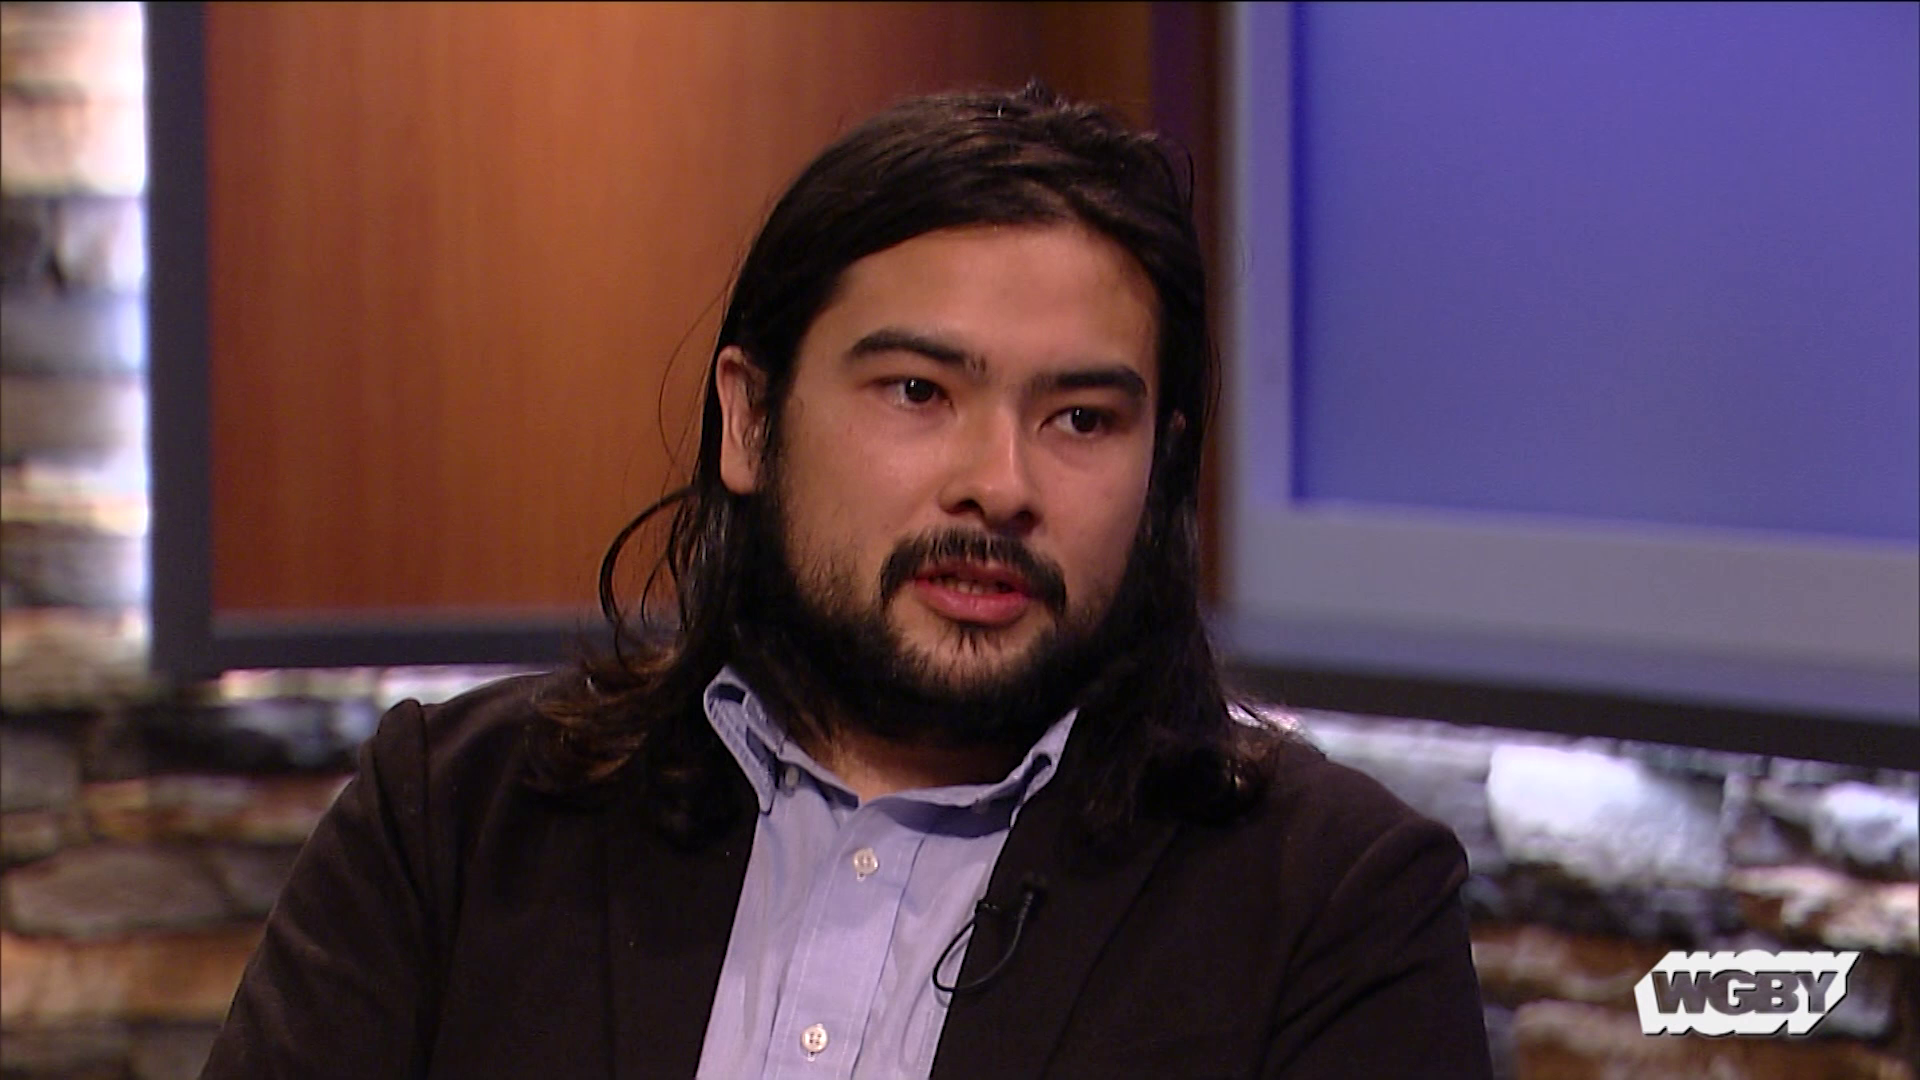 Mount Holyoke College Prof. Bryan Nakayama discusses the possibility of establishing the Space Force, proposed by Pres. Trump as a new US Military branch.